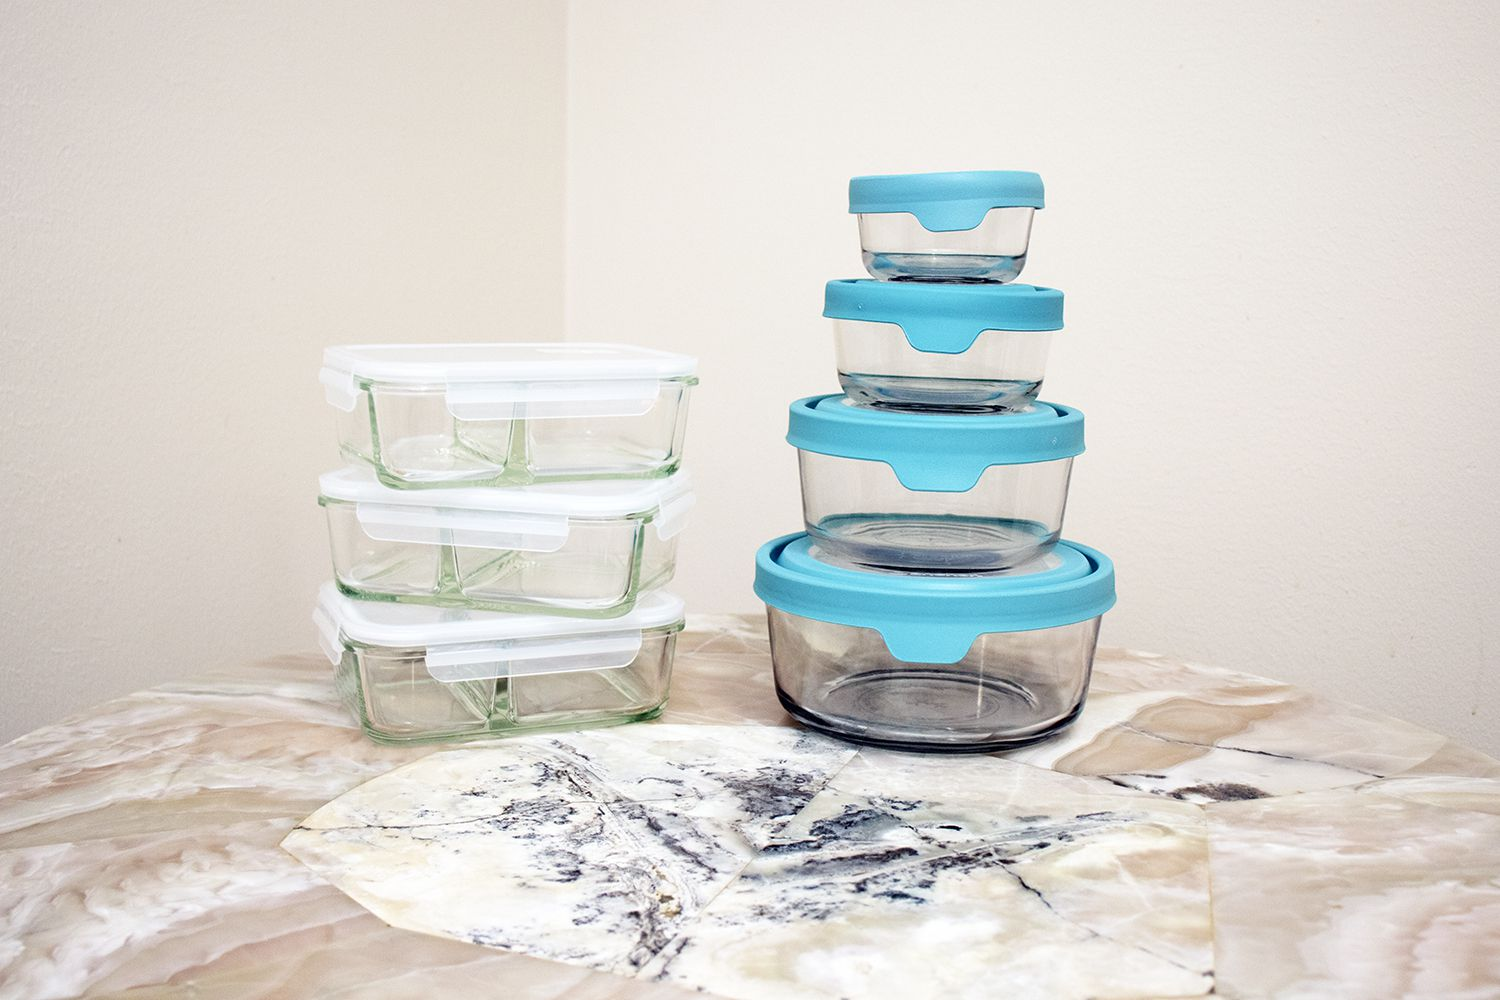 Anchor Hocking TrueSeal Food Storage Containers